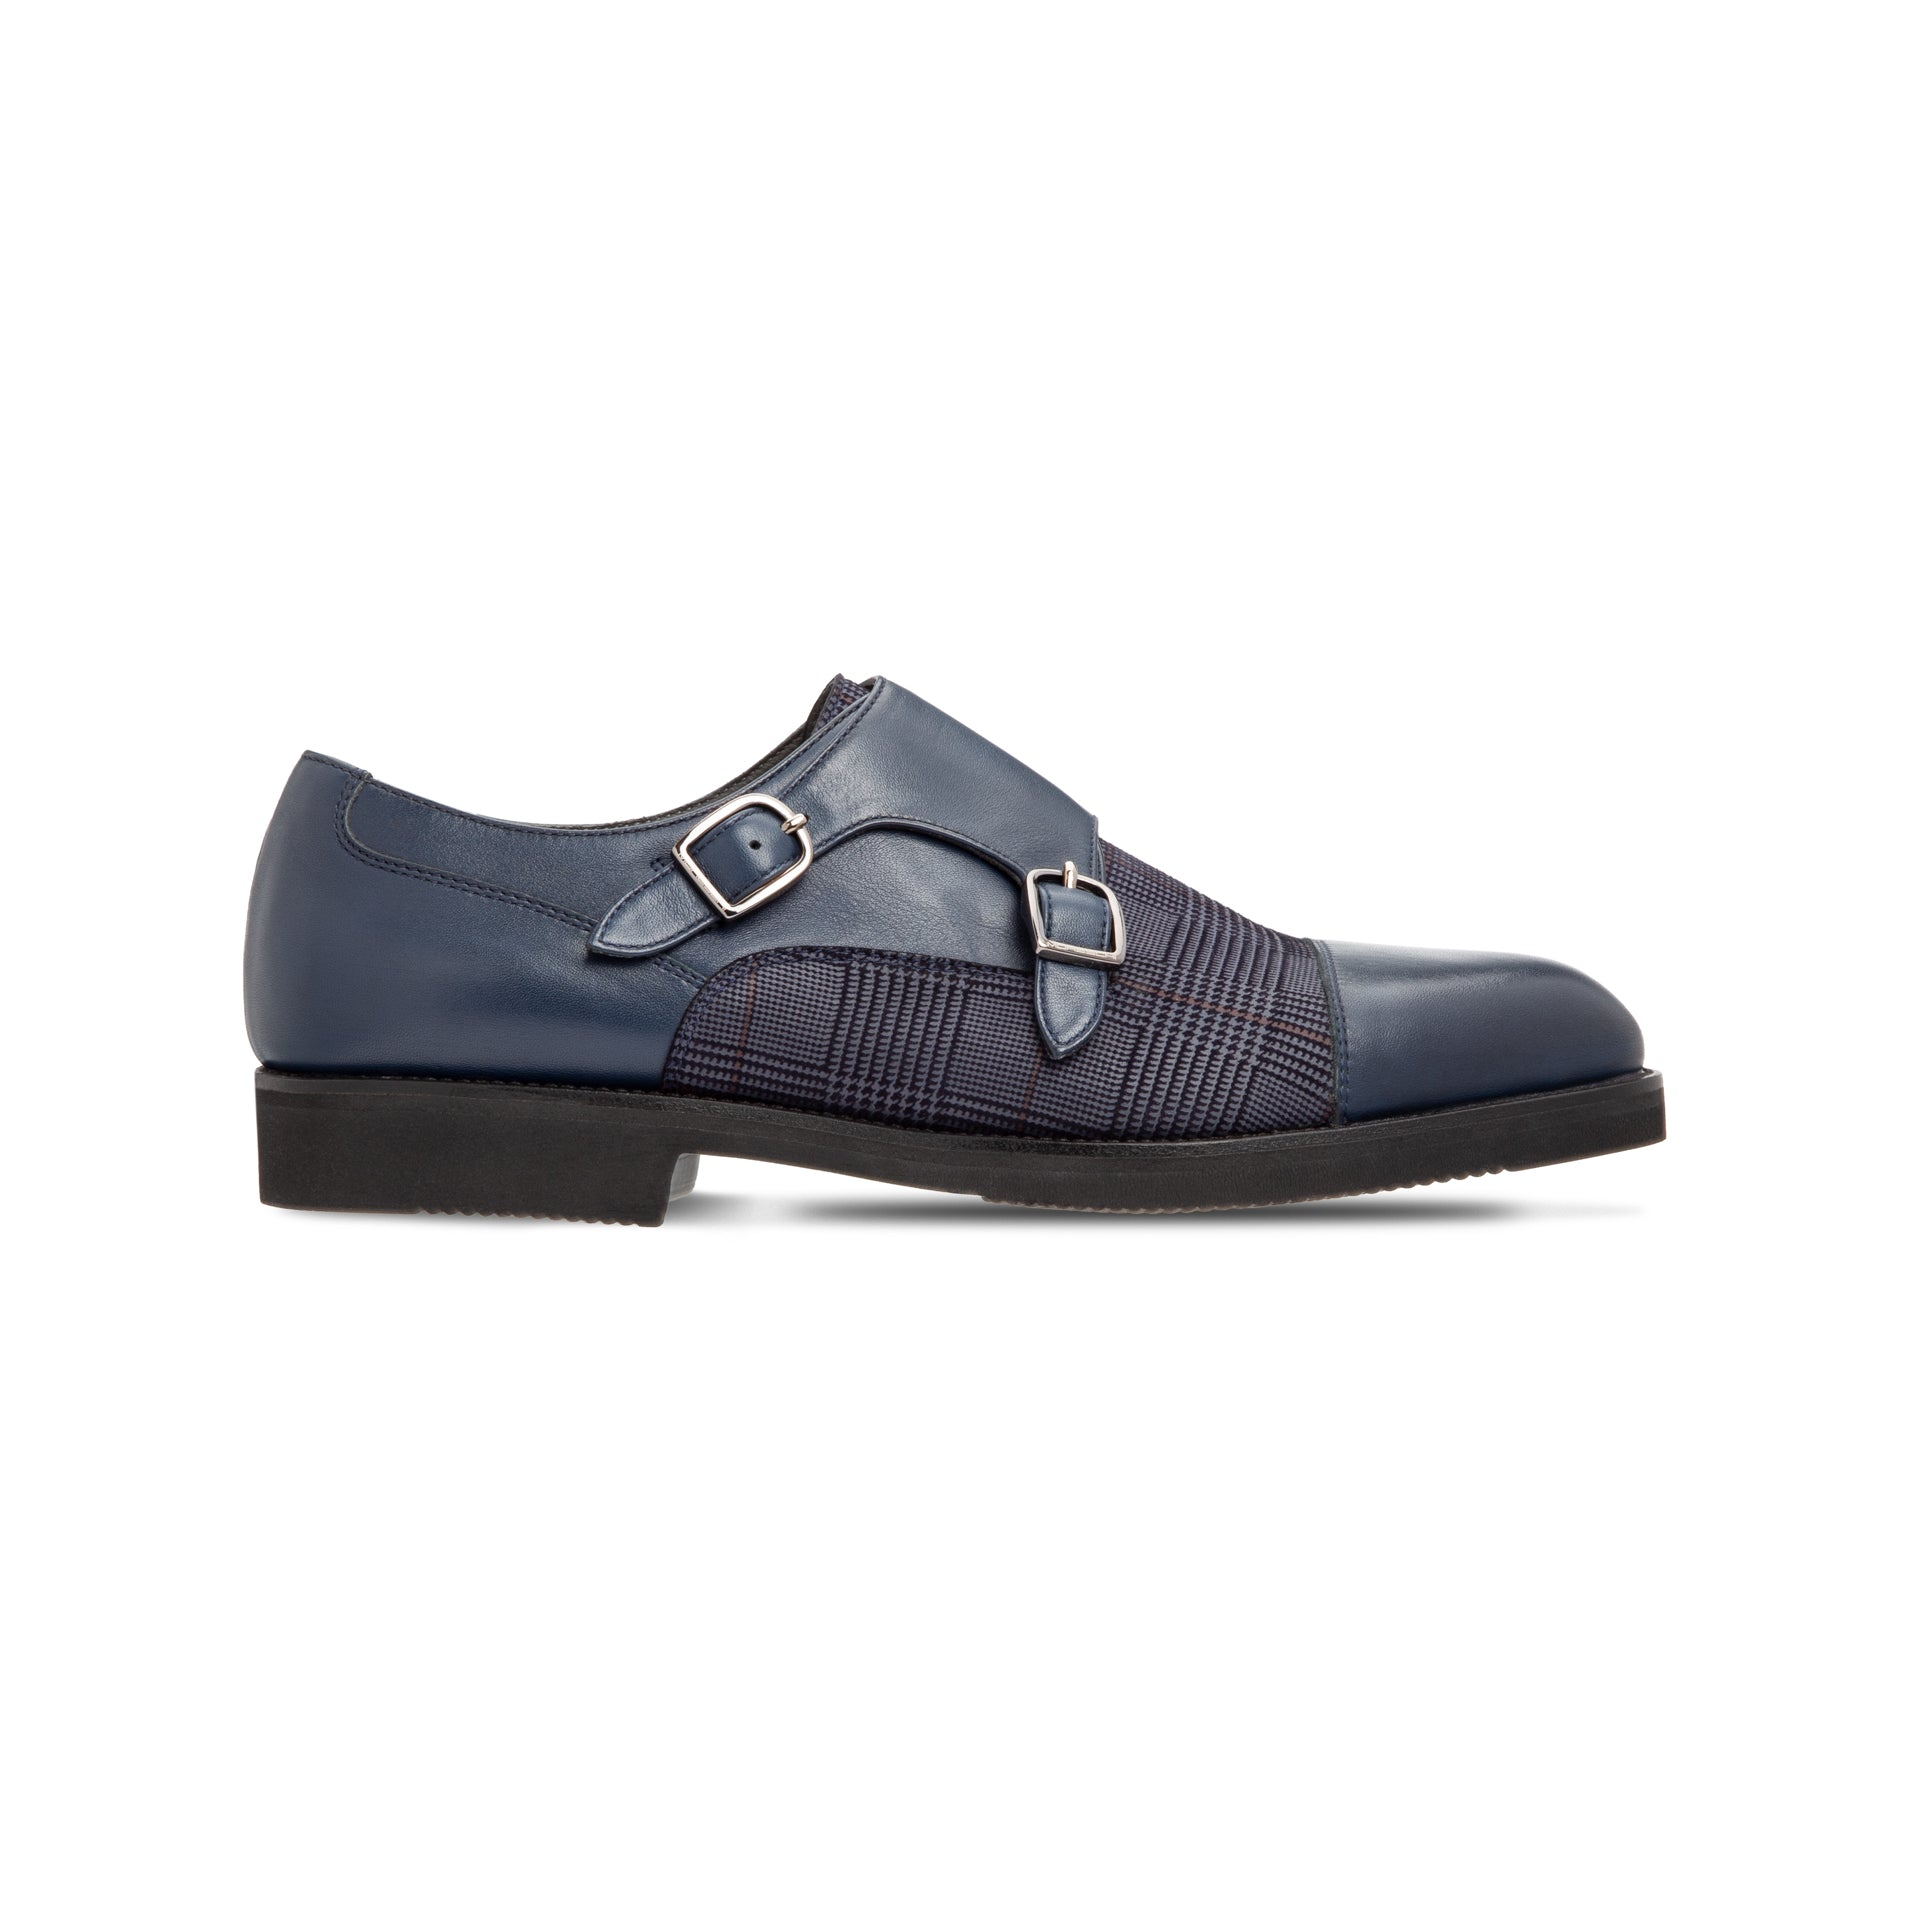 Blue calfskin double buckle shoes